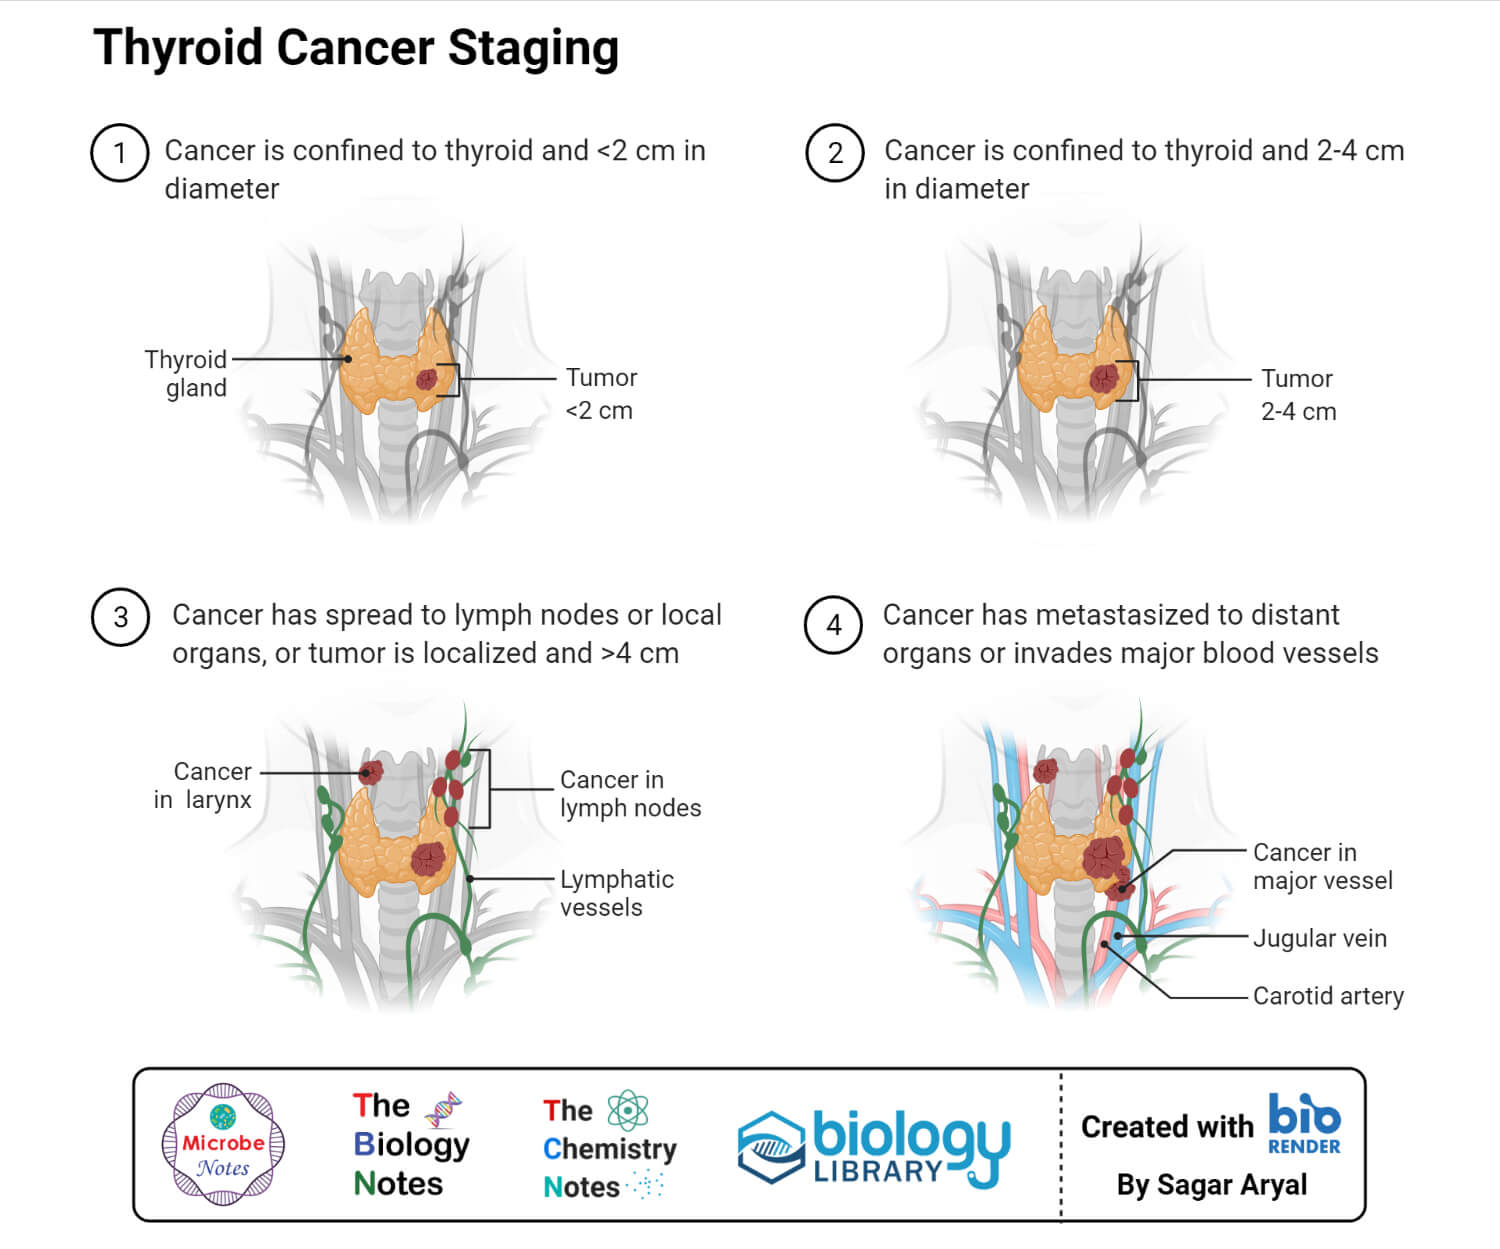 Thyroid Cancer Staging